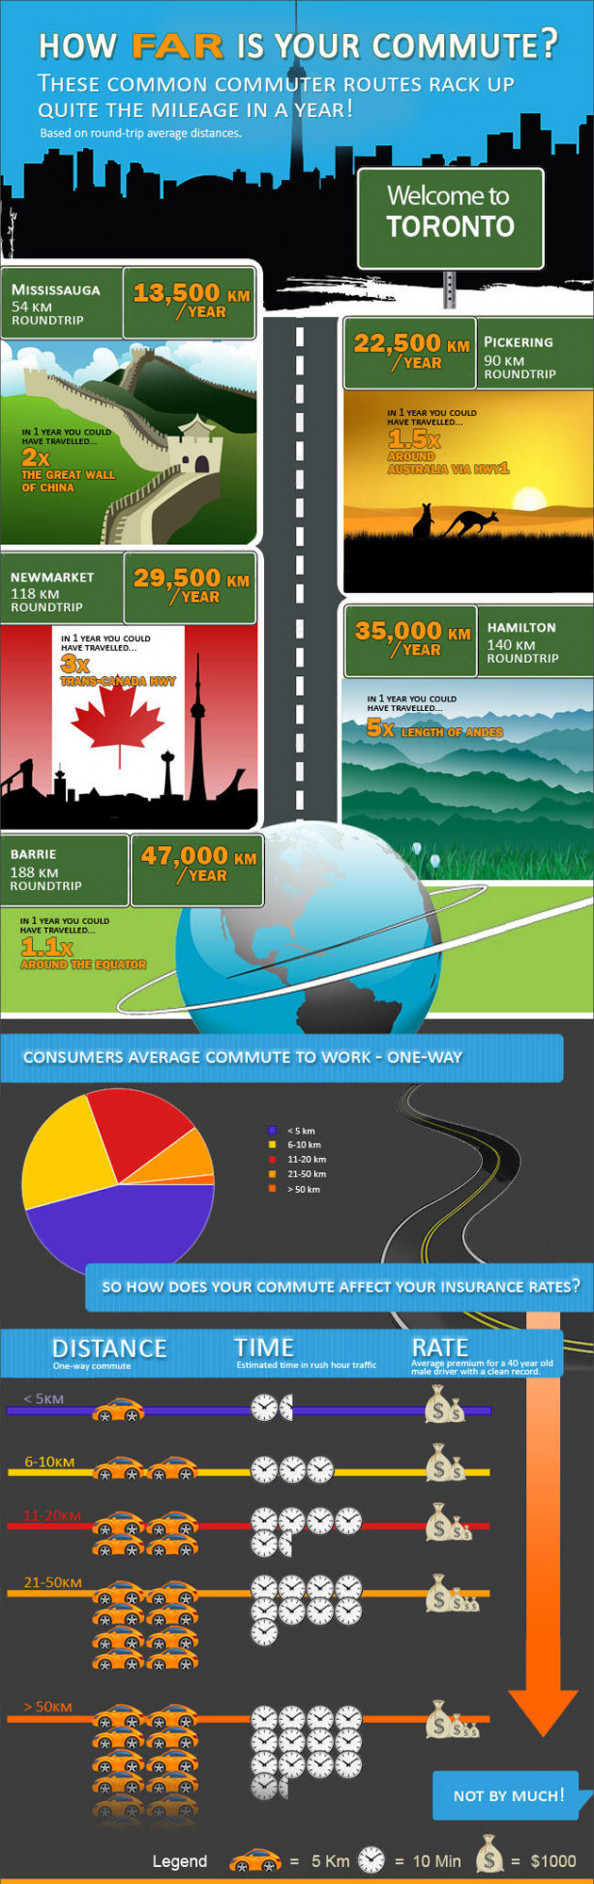 How Far is Your Commute? Infographic